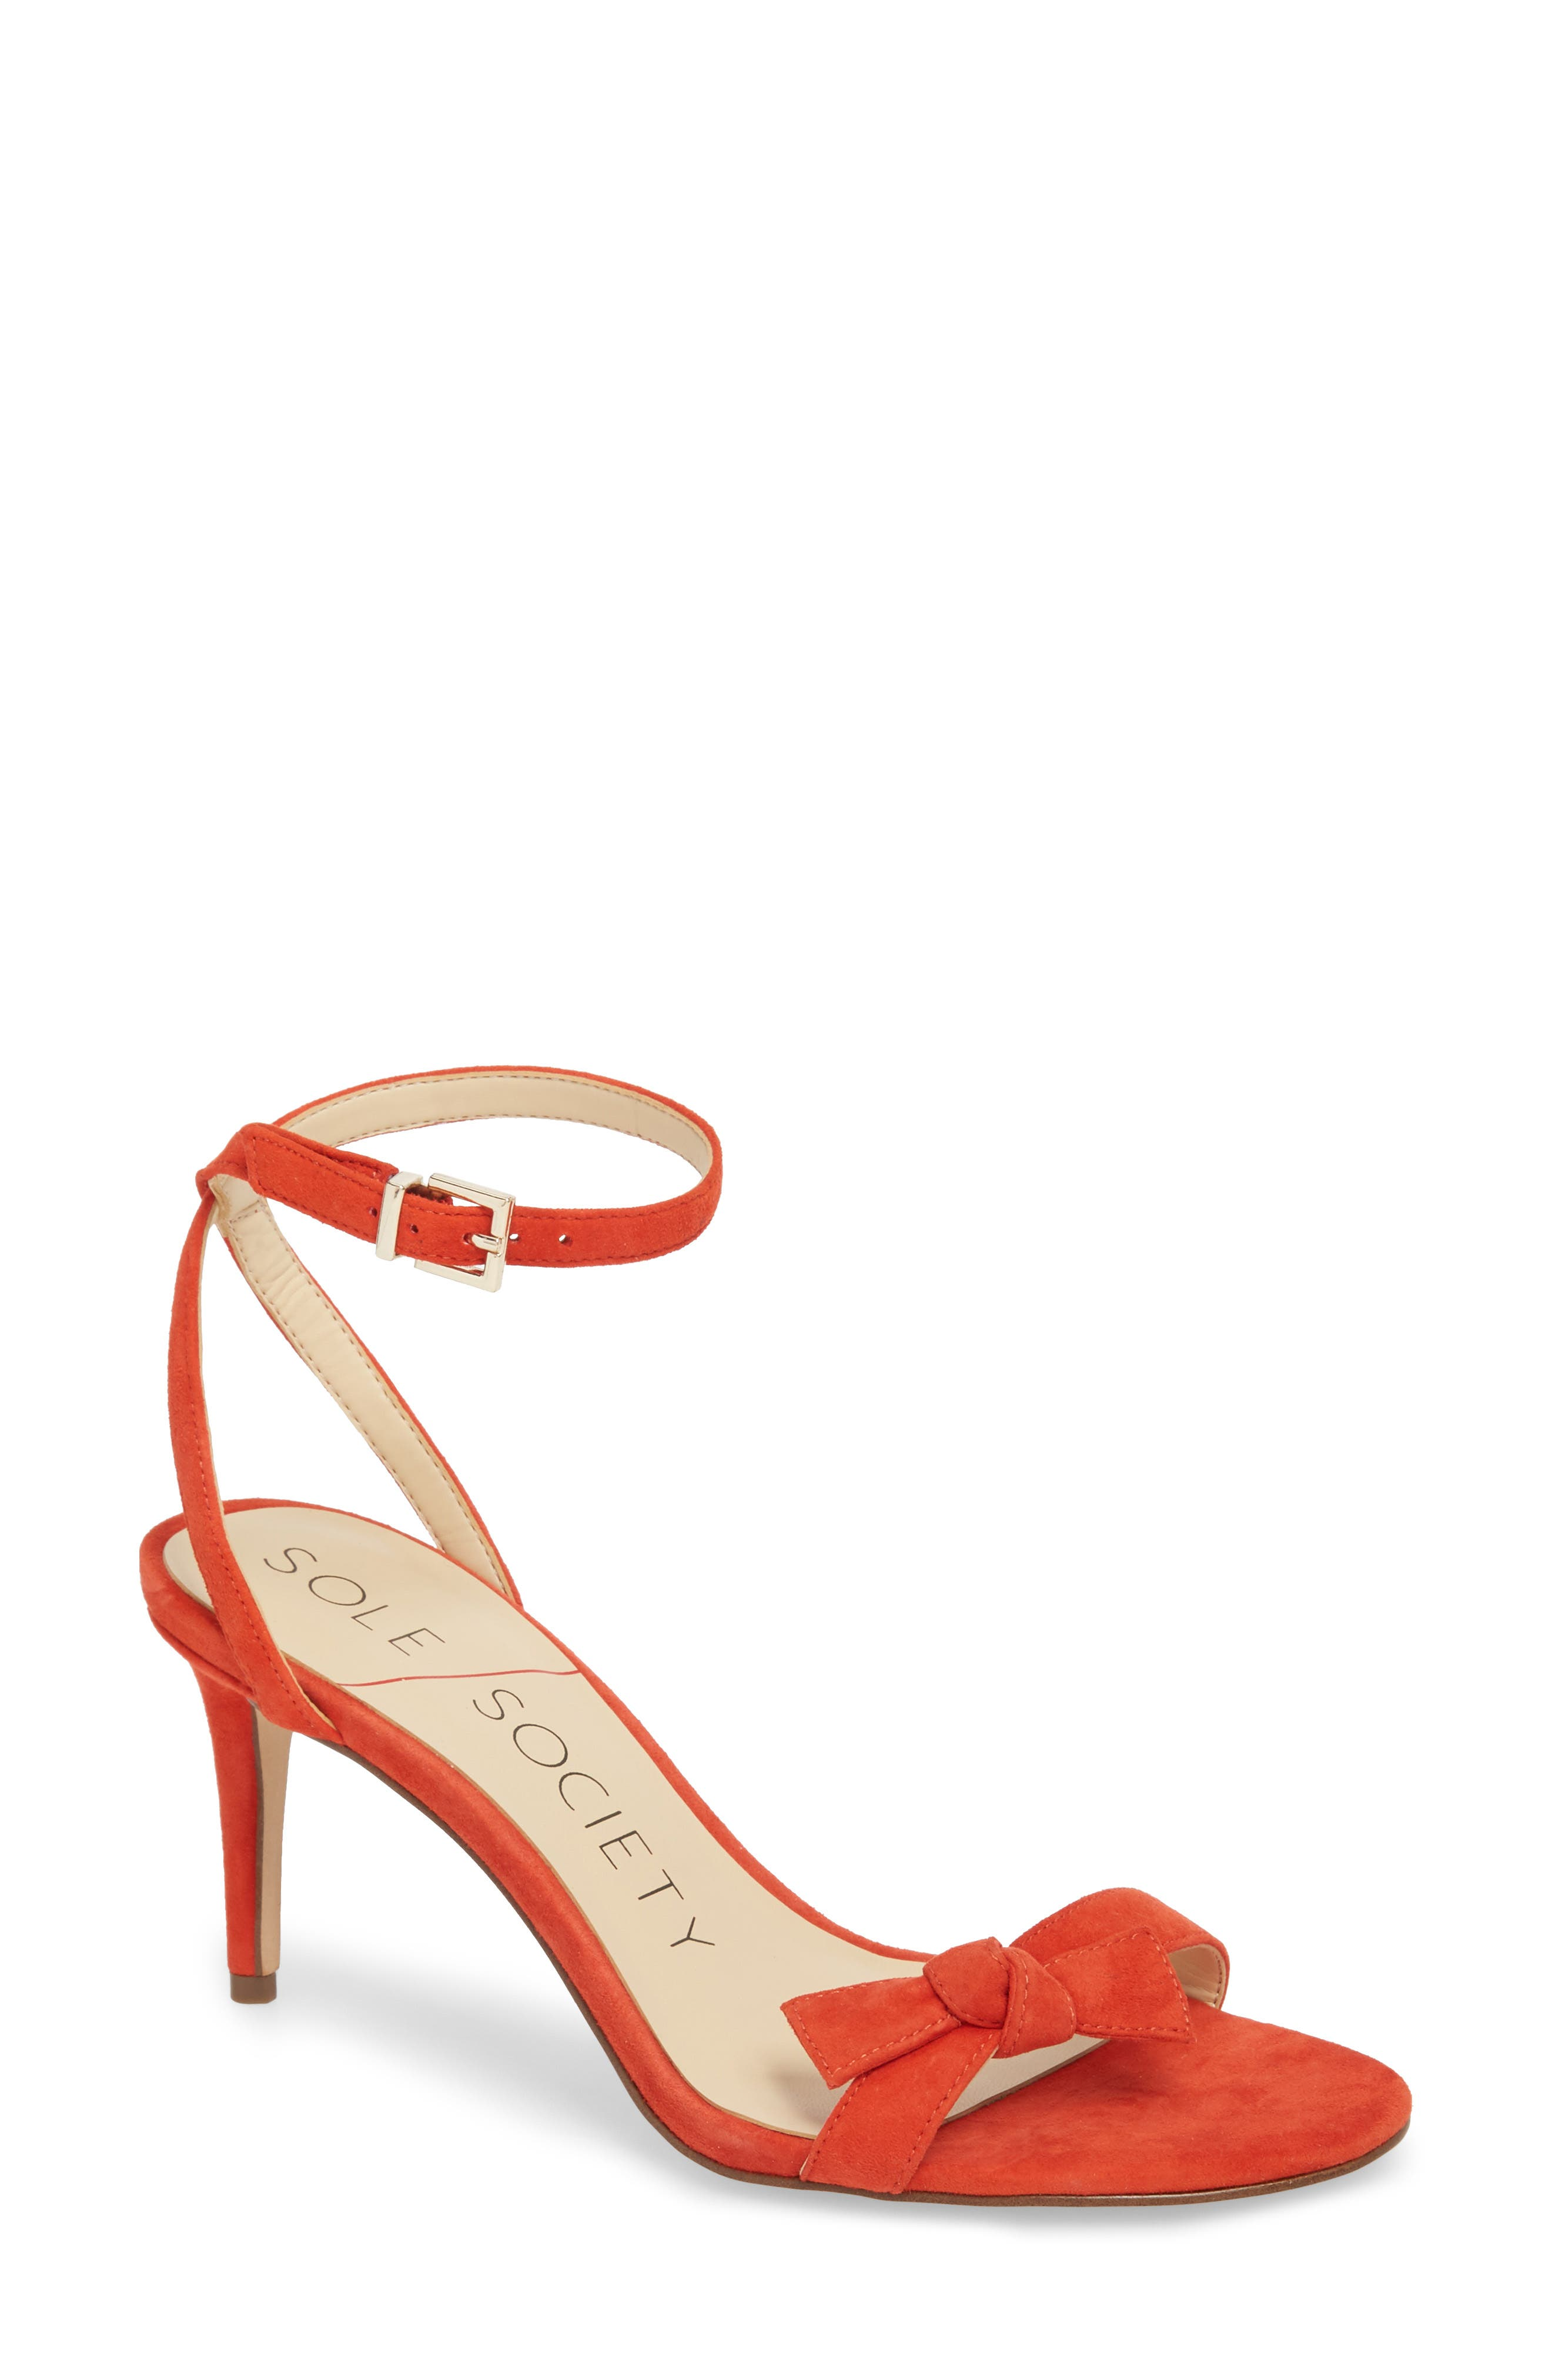 Sole Society Avrilie Knotted Sandal, Coral